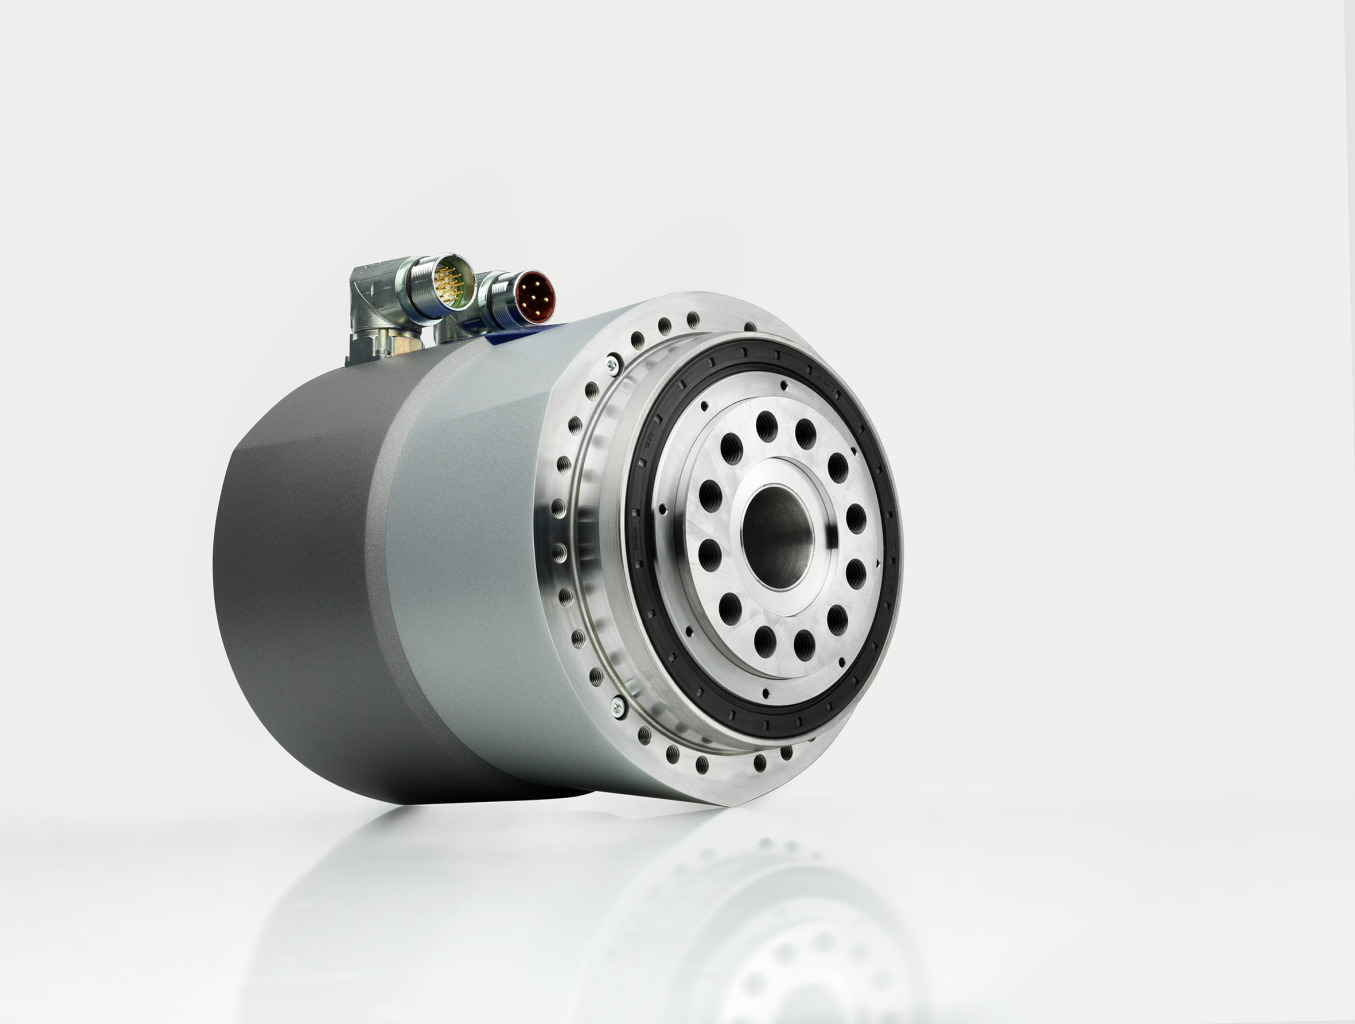 WITTENSTEIN's Galaxie Drive System revolutionizes high performance engineering